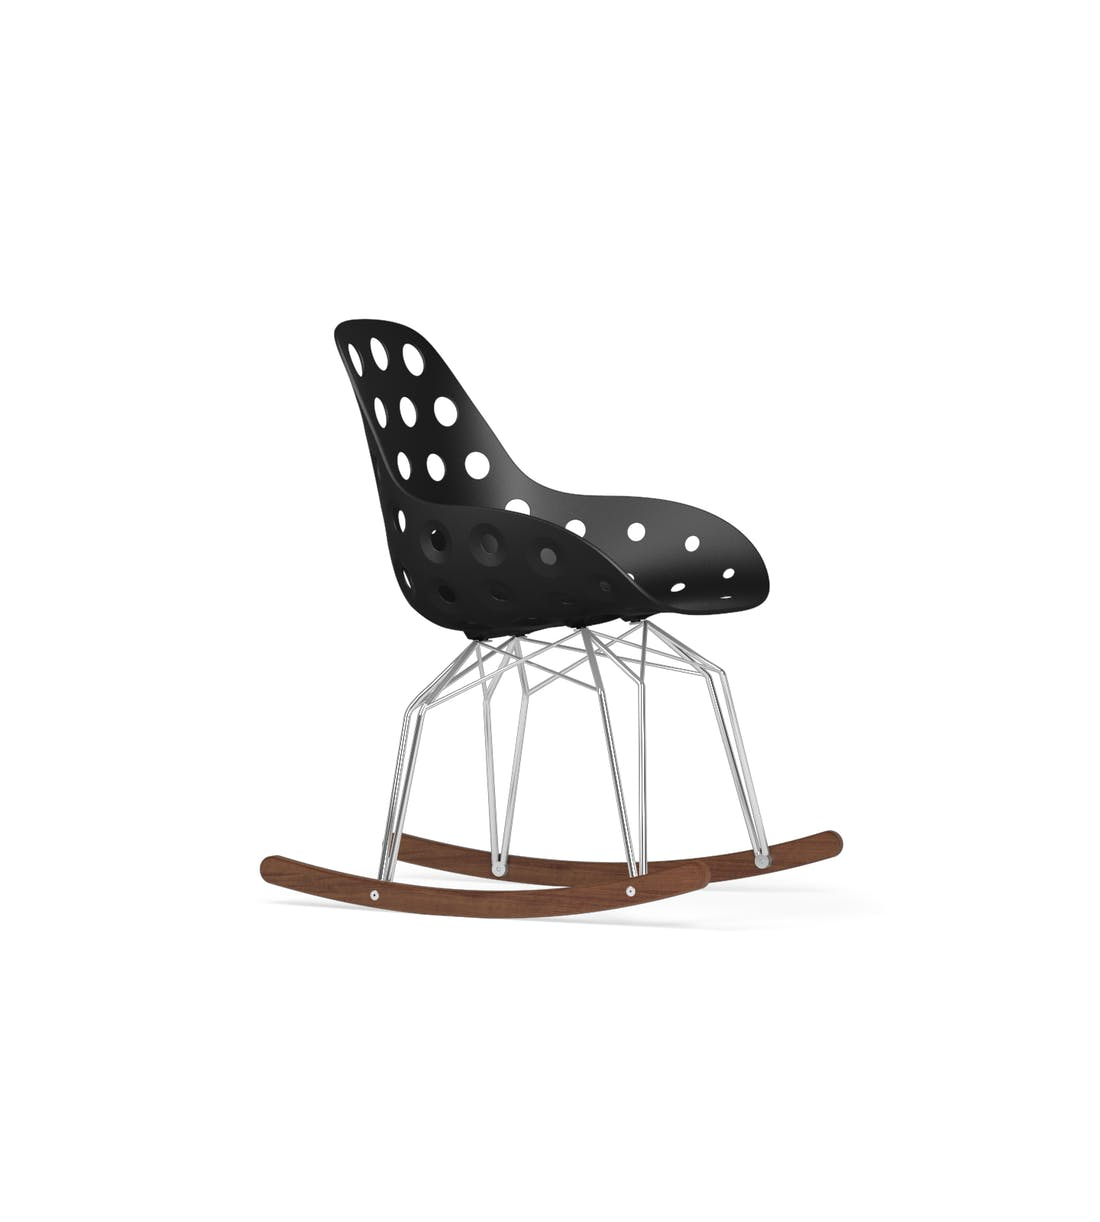 Kubikoff design chair 1402cw 51